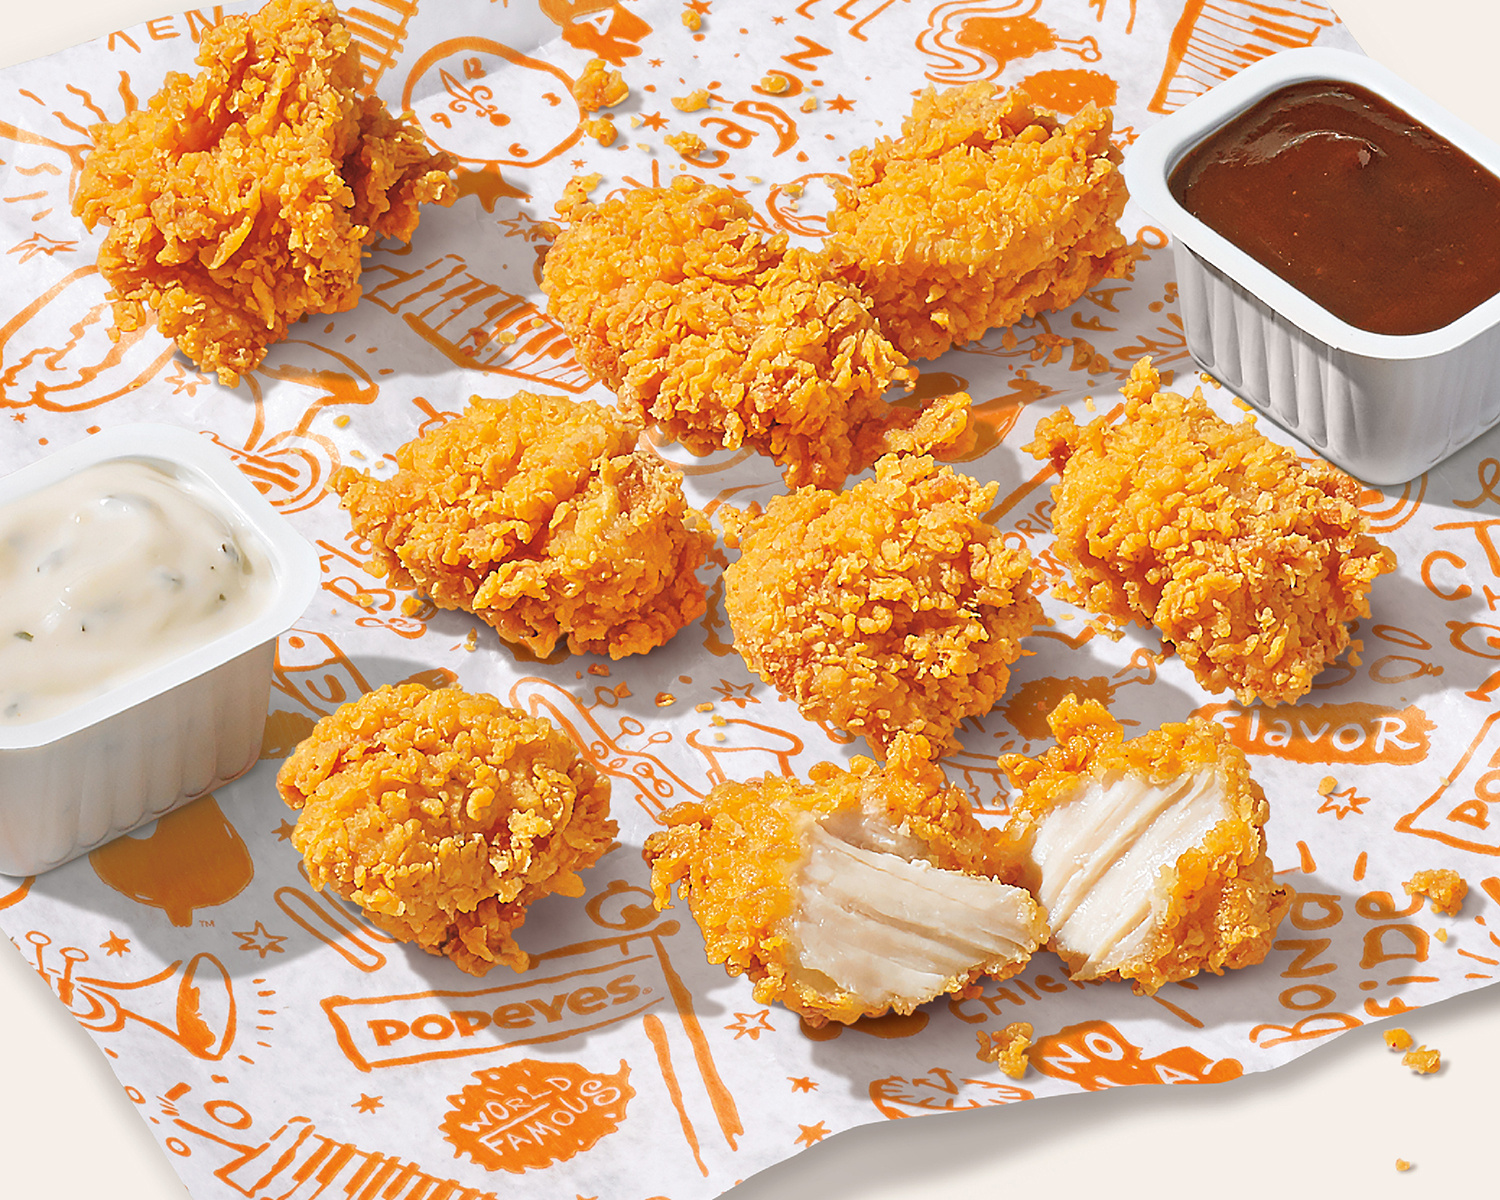 Popeyes Adds Chicken Nuggets to Its Menus Nationwide